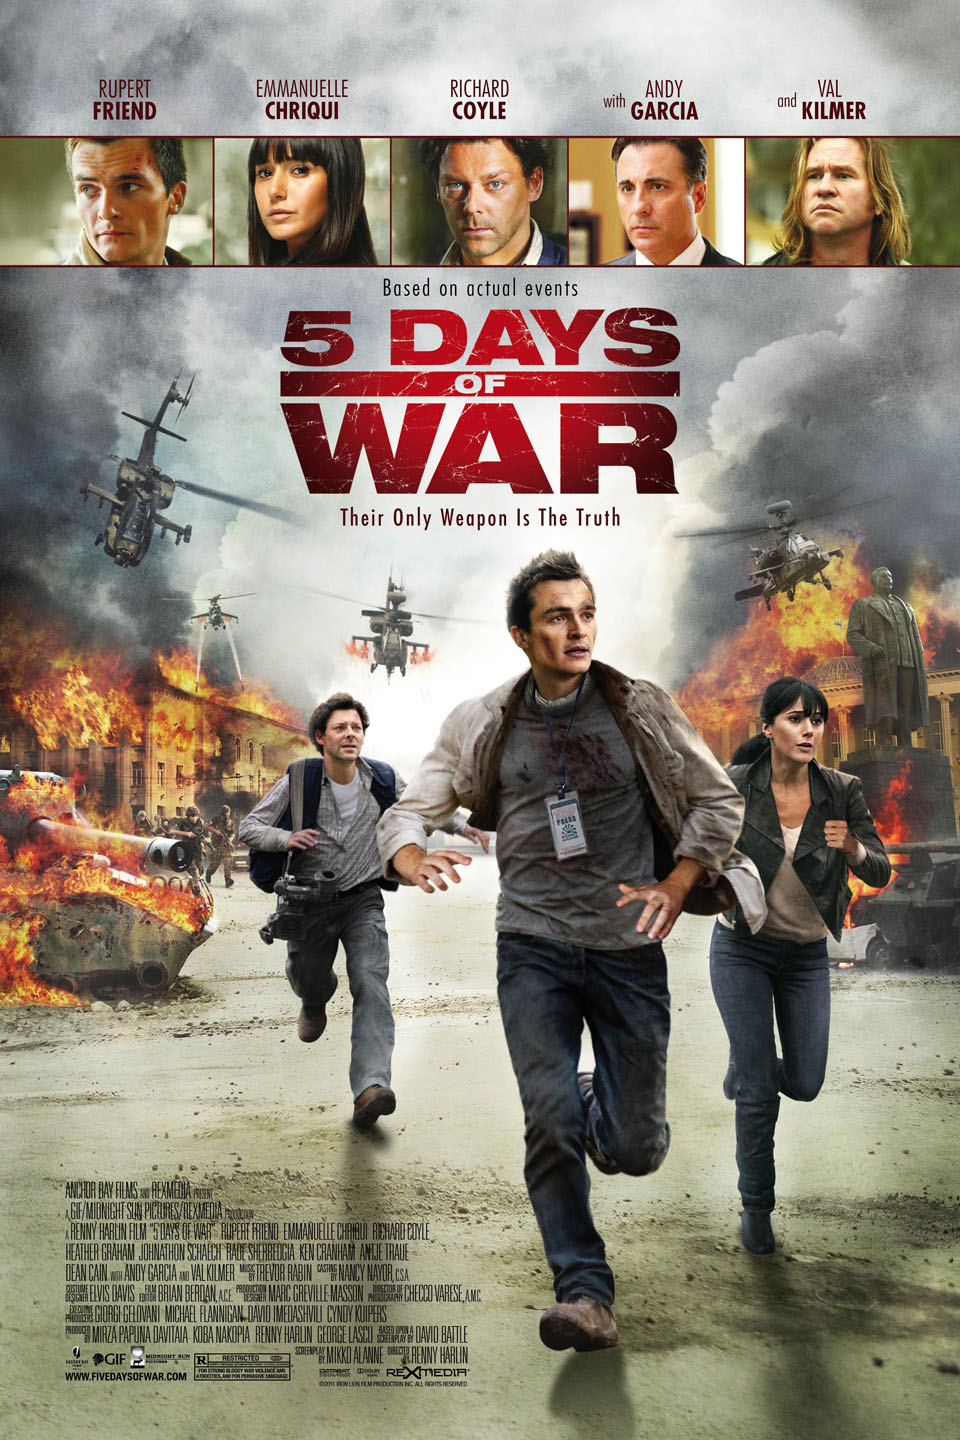 5 Days of War-5 Days of War